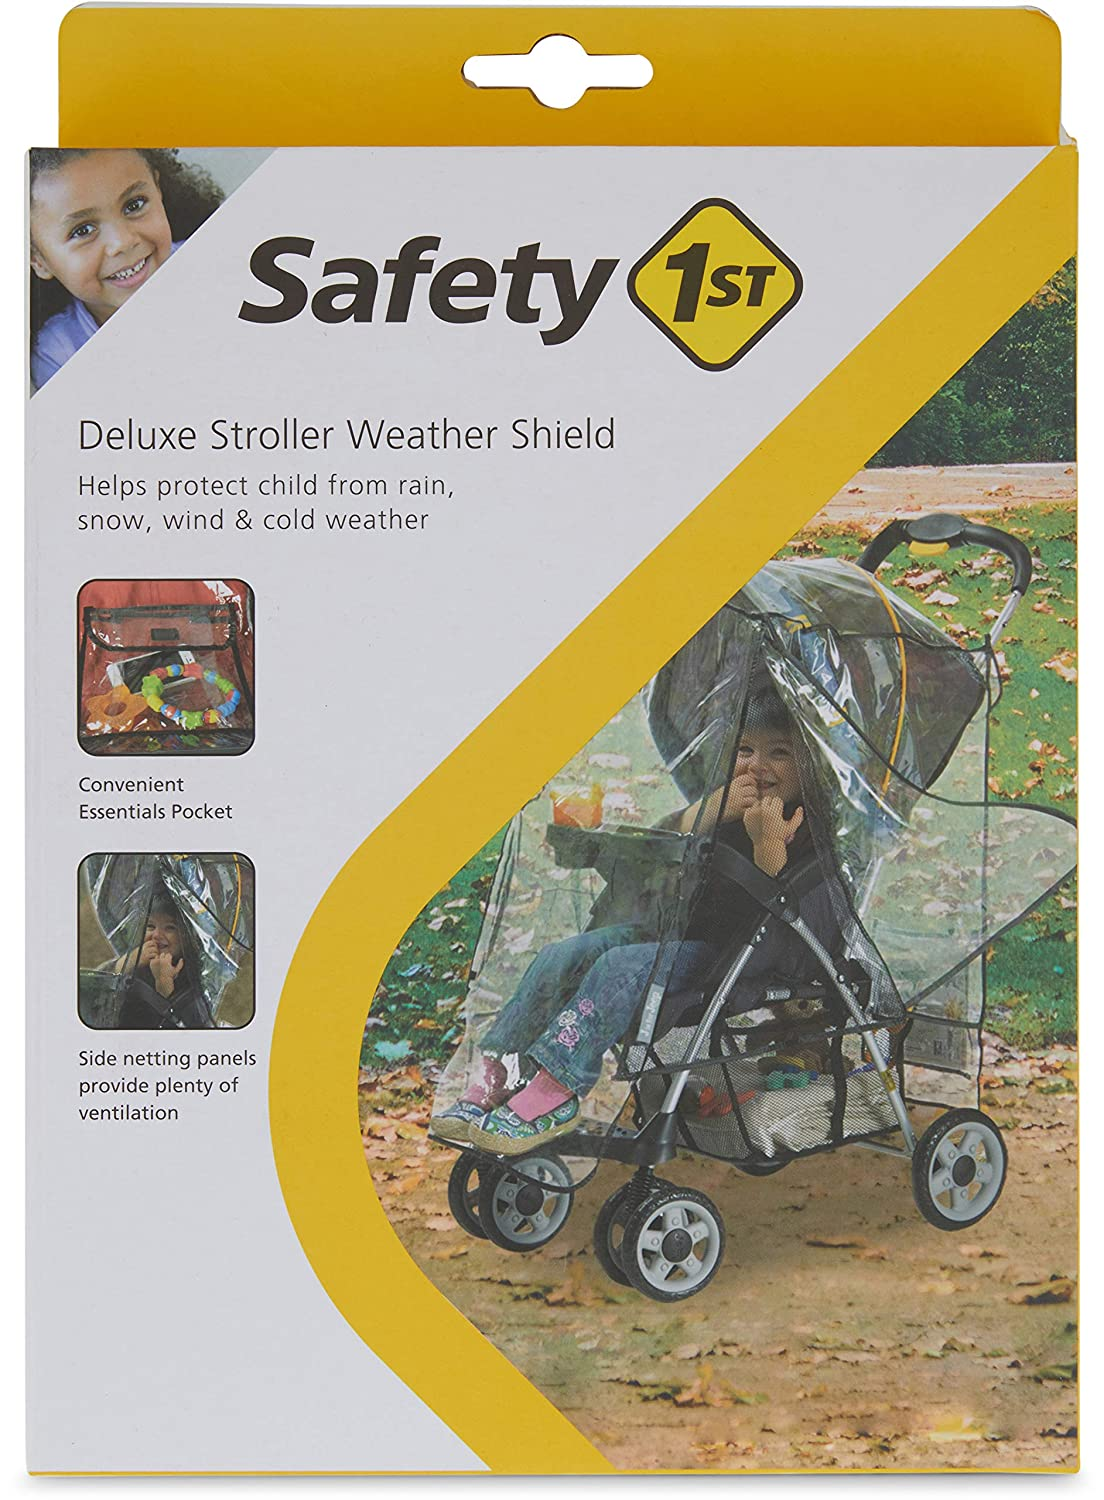 Safety 1st Weathershield (Deluxe Stroller)